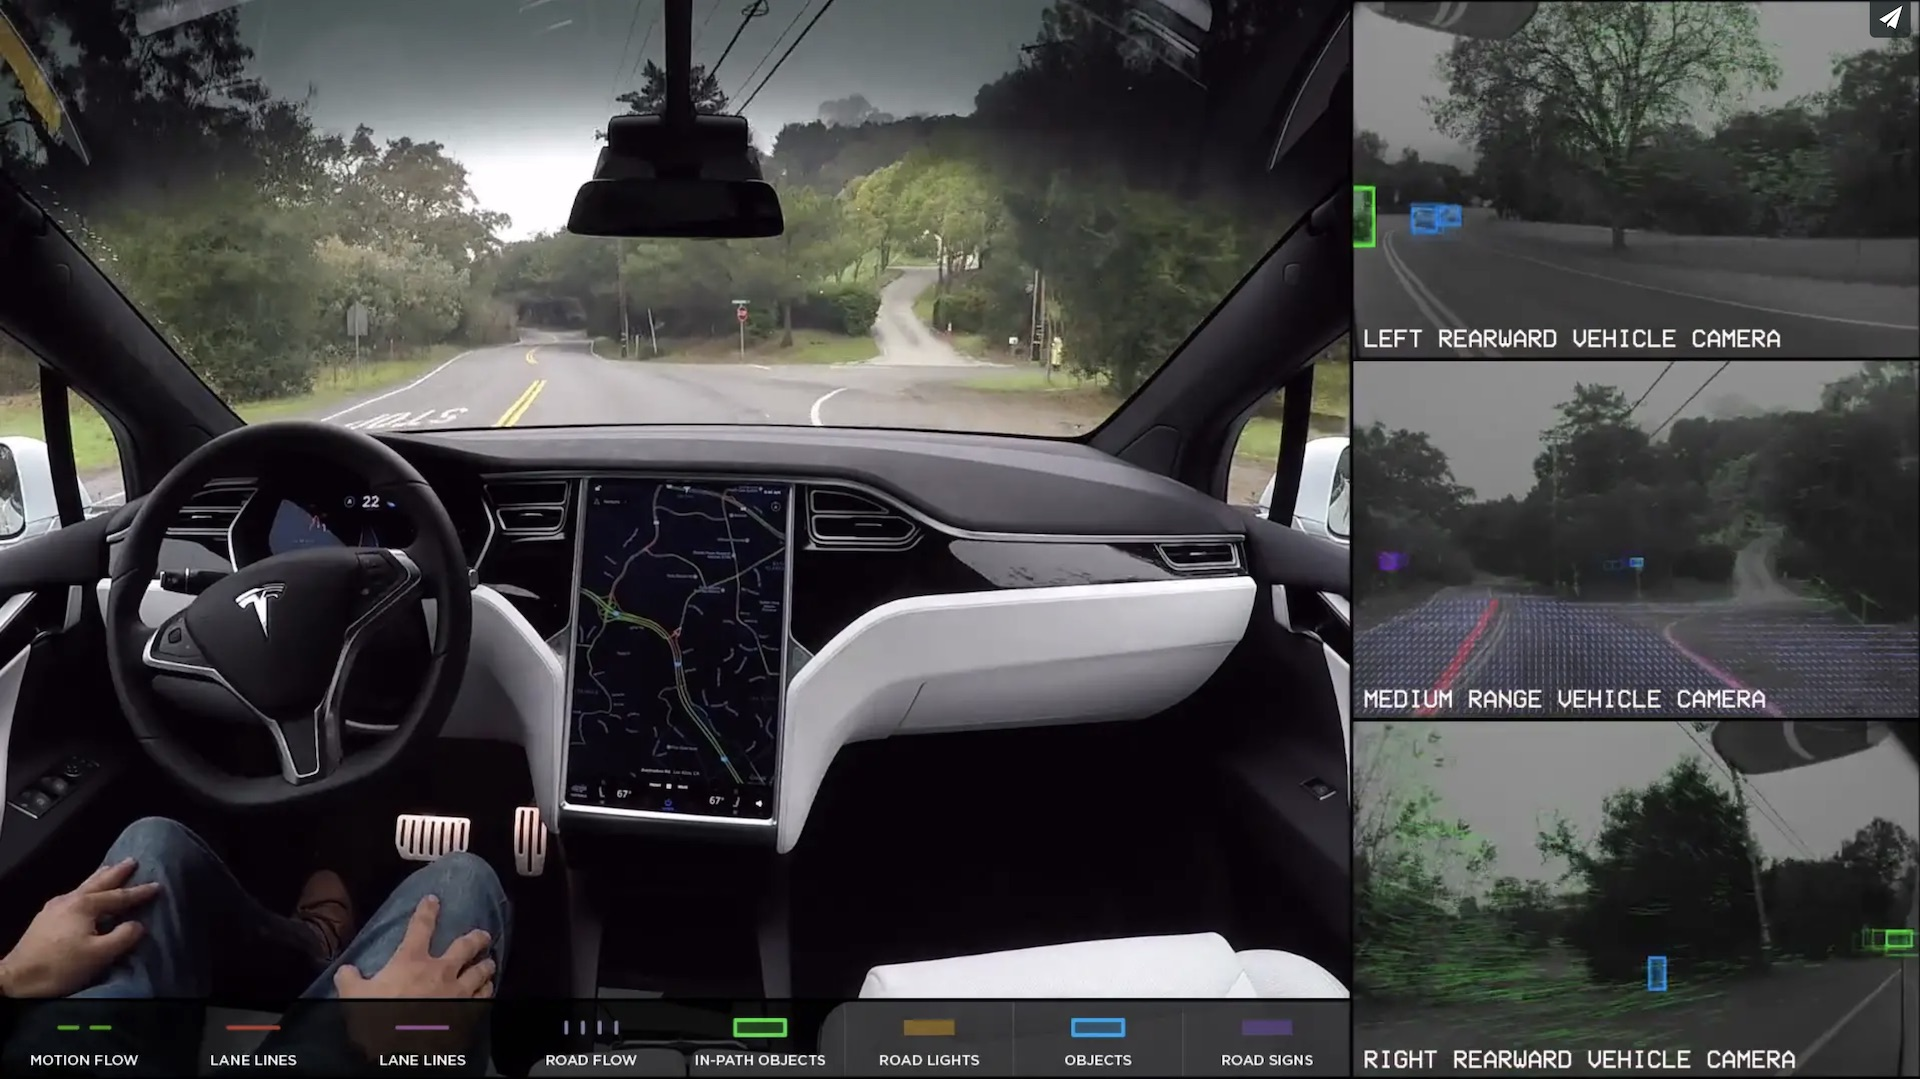 A self-driving Tesla prototype using Nvidia Drive PX 2 AI technology.